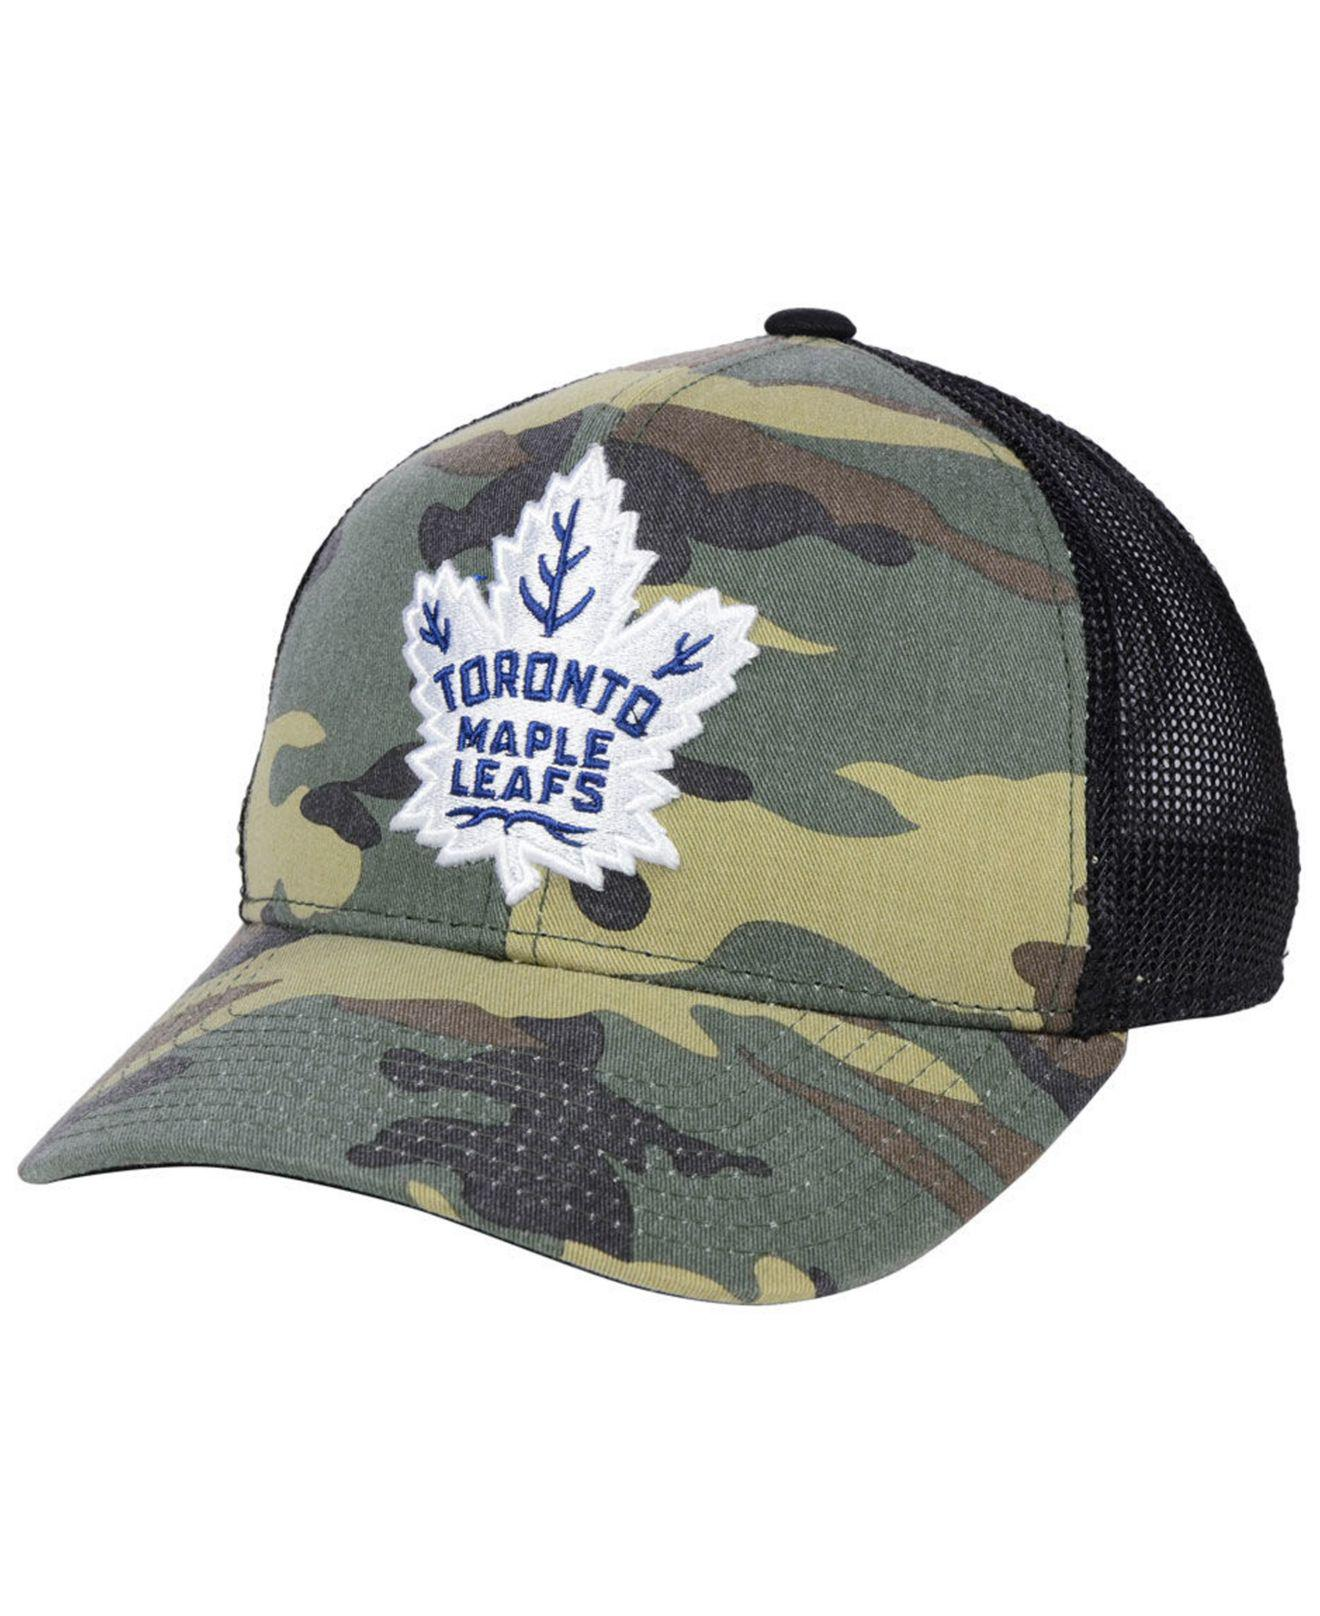 online retailer 6ffad 89c56 ... authentic adidas green toronto maple leafs camo trucker cap for men  lyst. view fullscreen 46b52 promo code for fashion fitted team hat ...